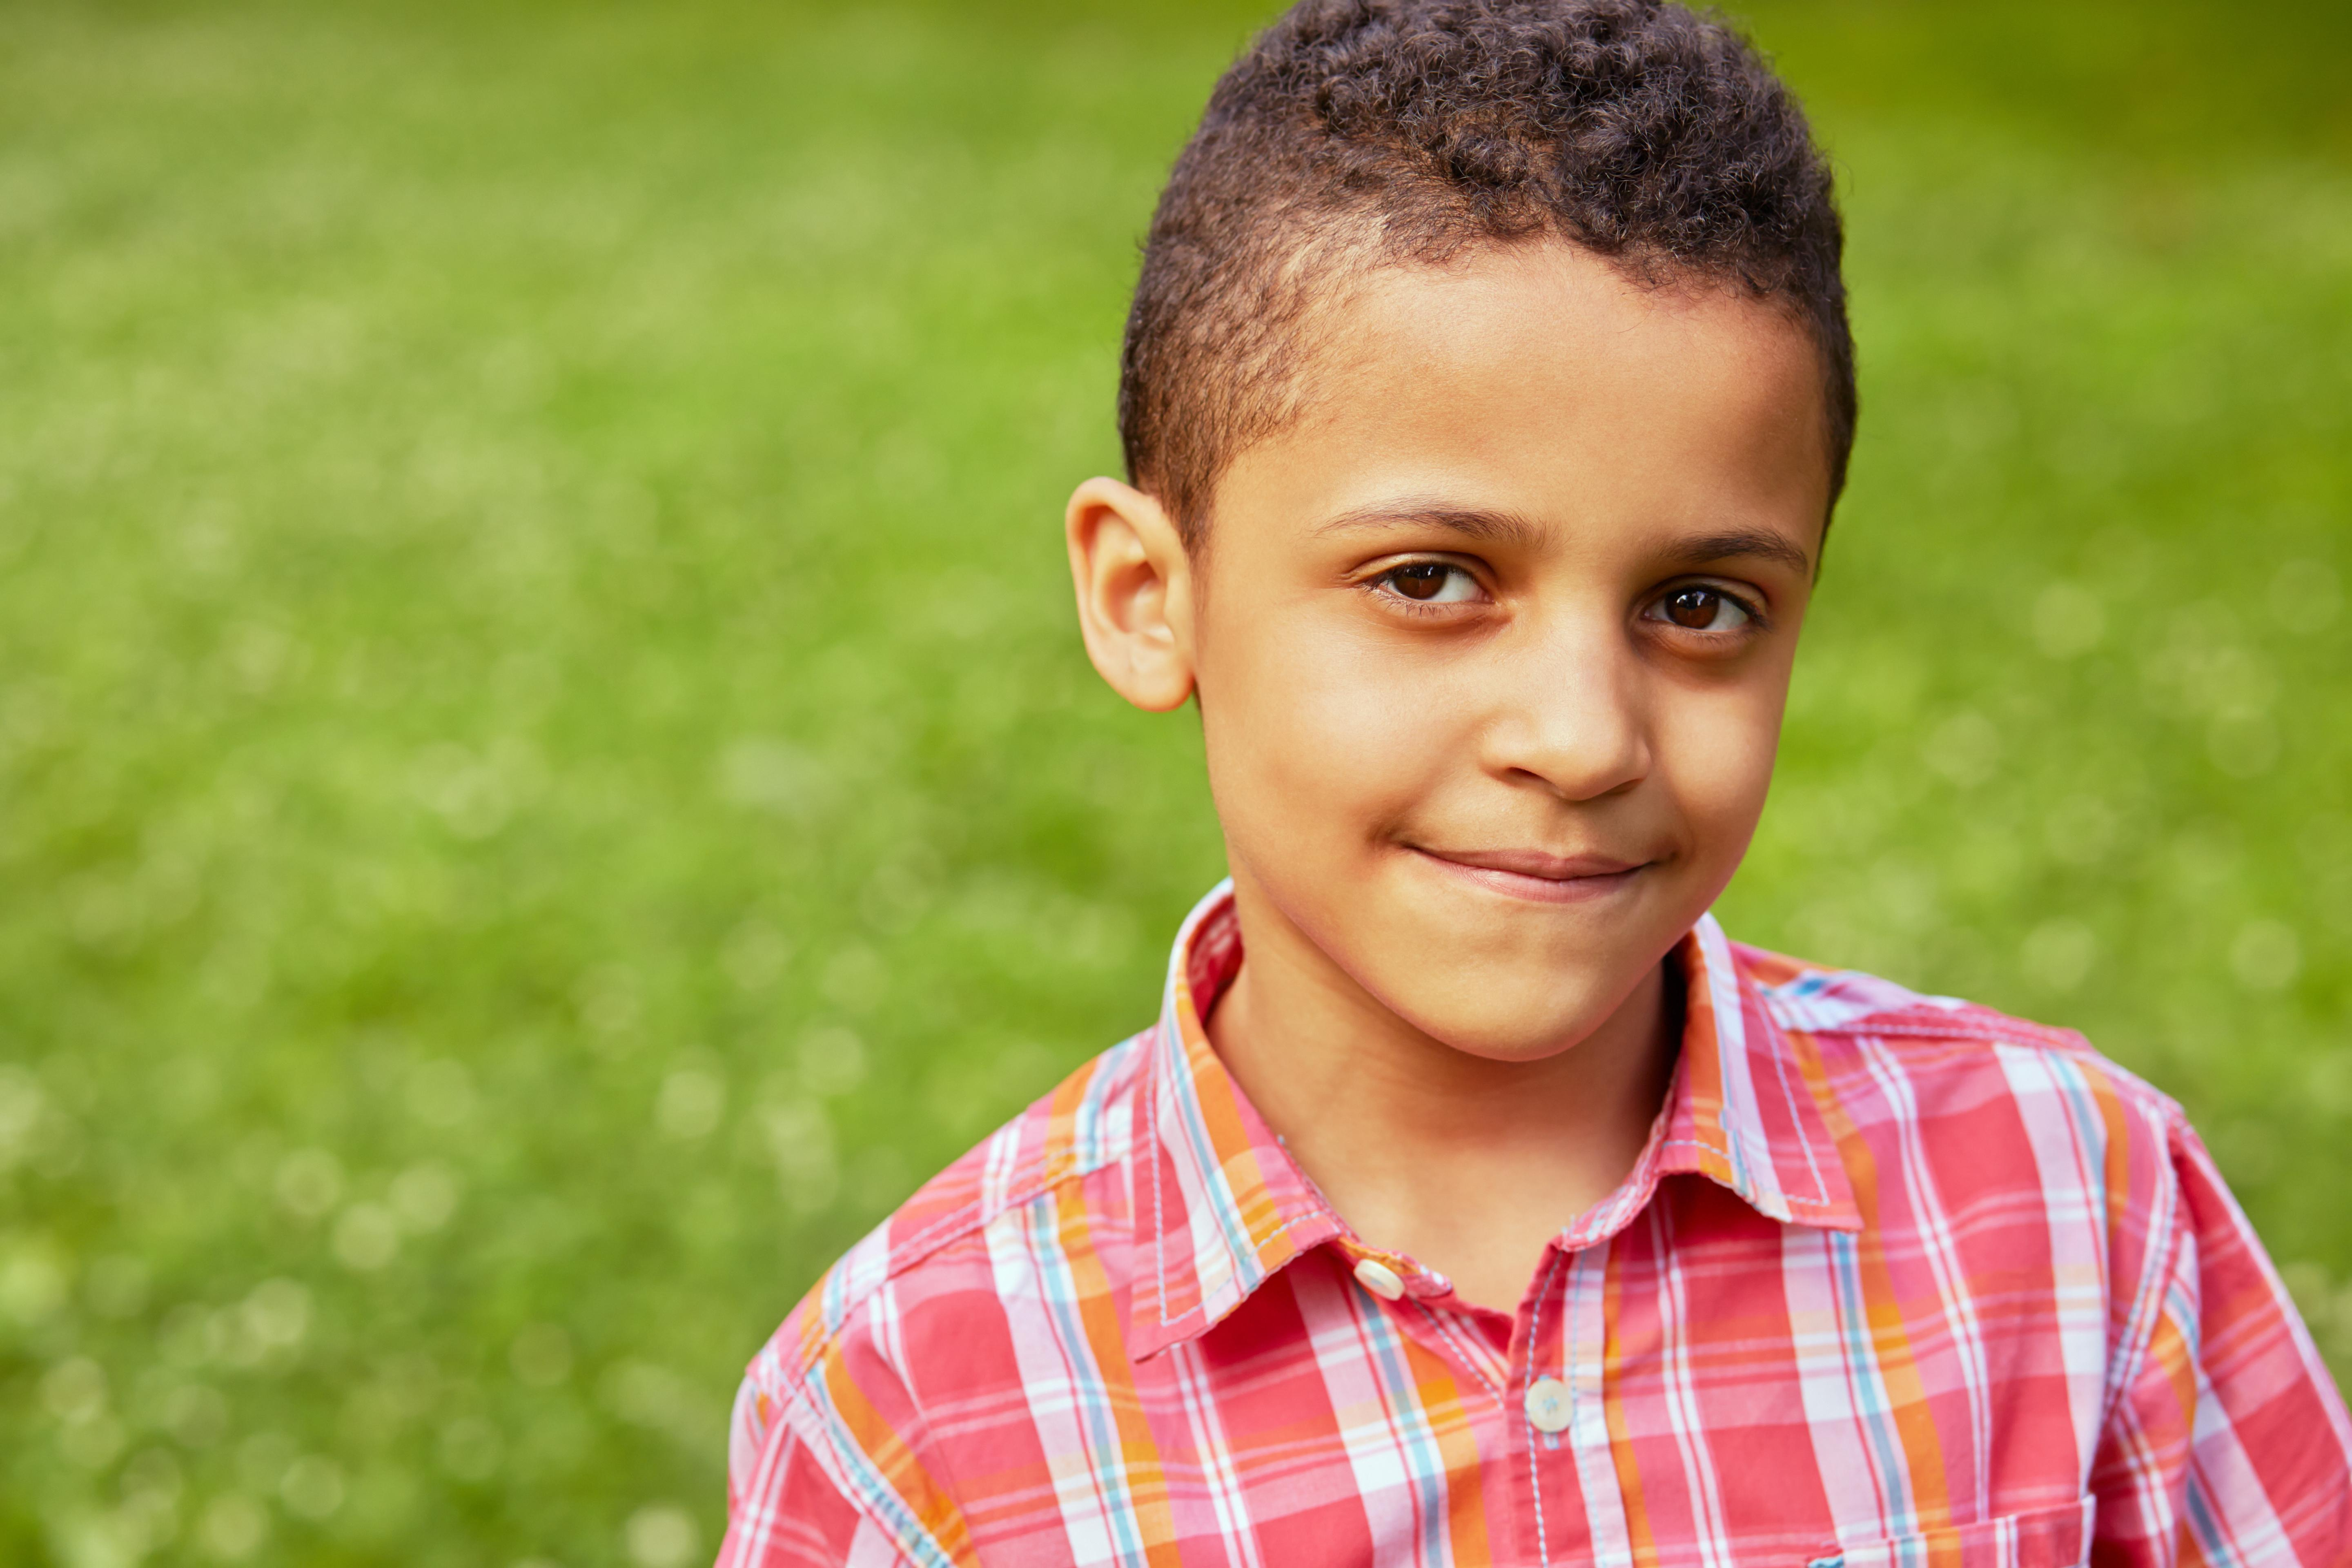 Kid with Incarcerated Parent